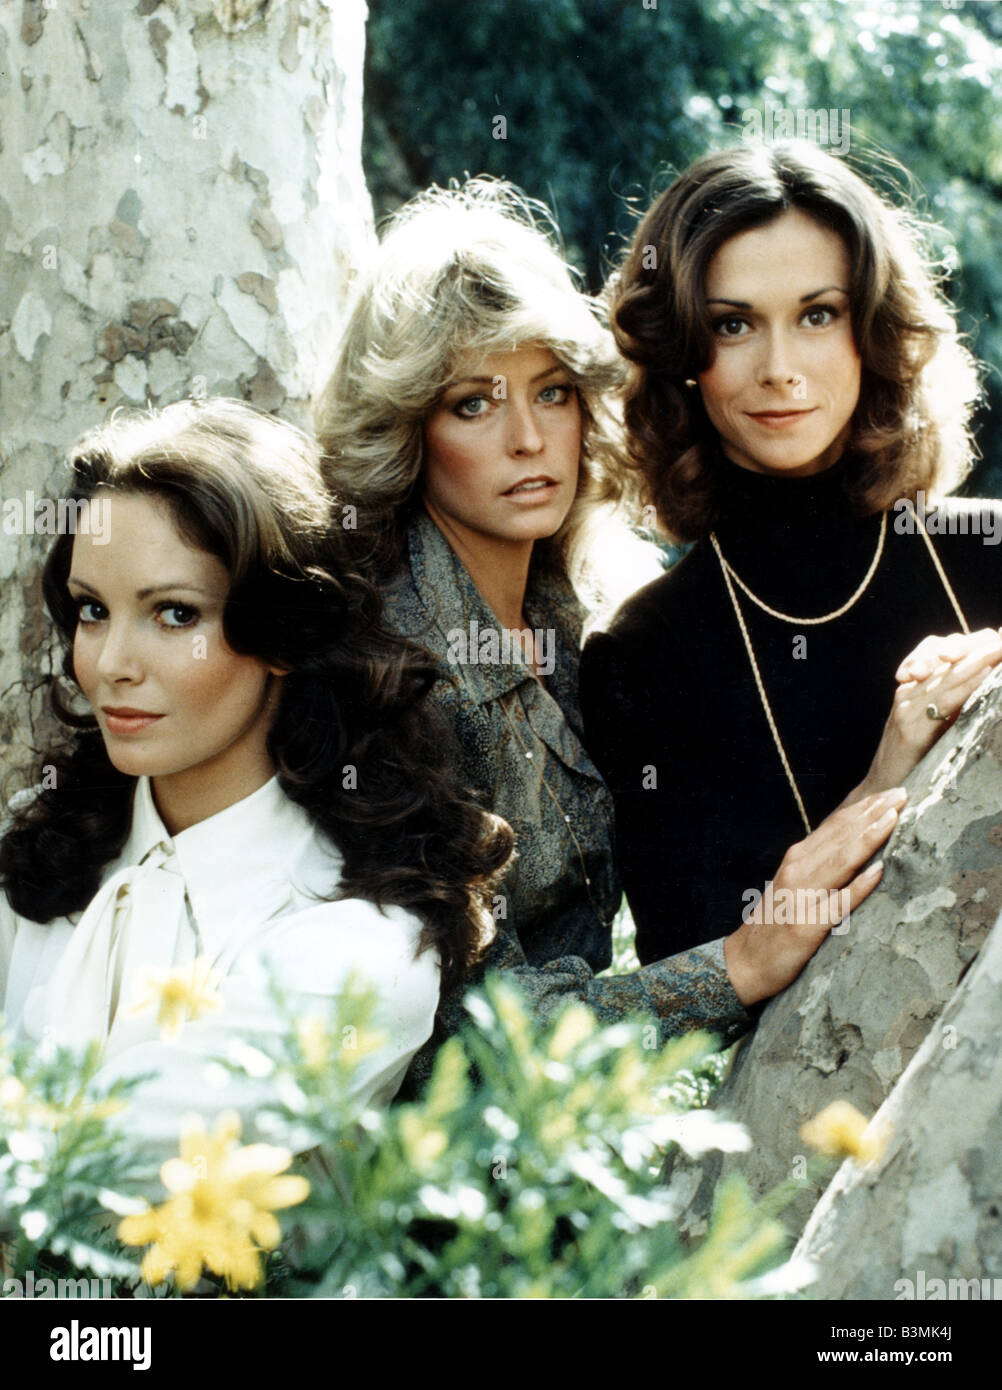 79e6b79a340e6 CHARLIE S ANGELS US TV series with from left Jaclyn Smith and Farrah  Fawcett and Kate Jackson